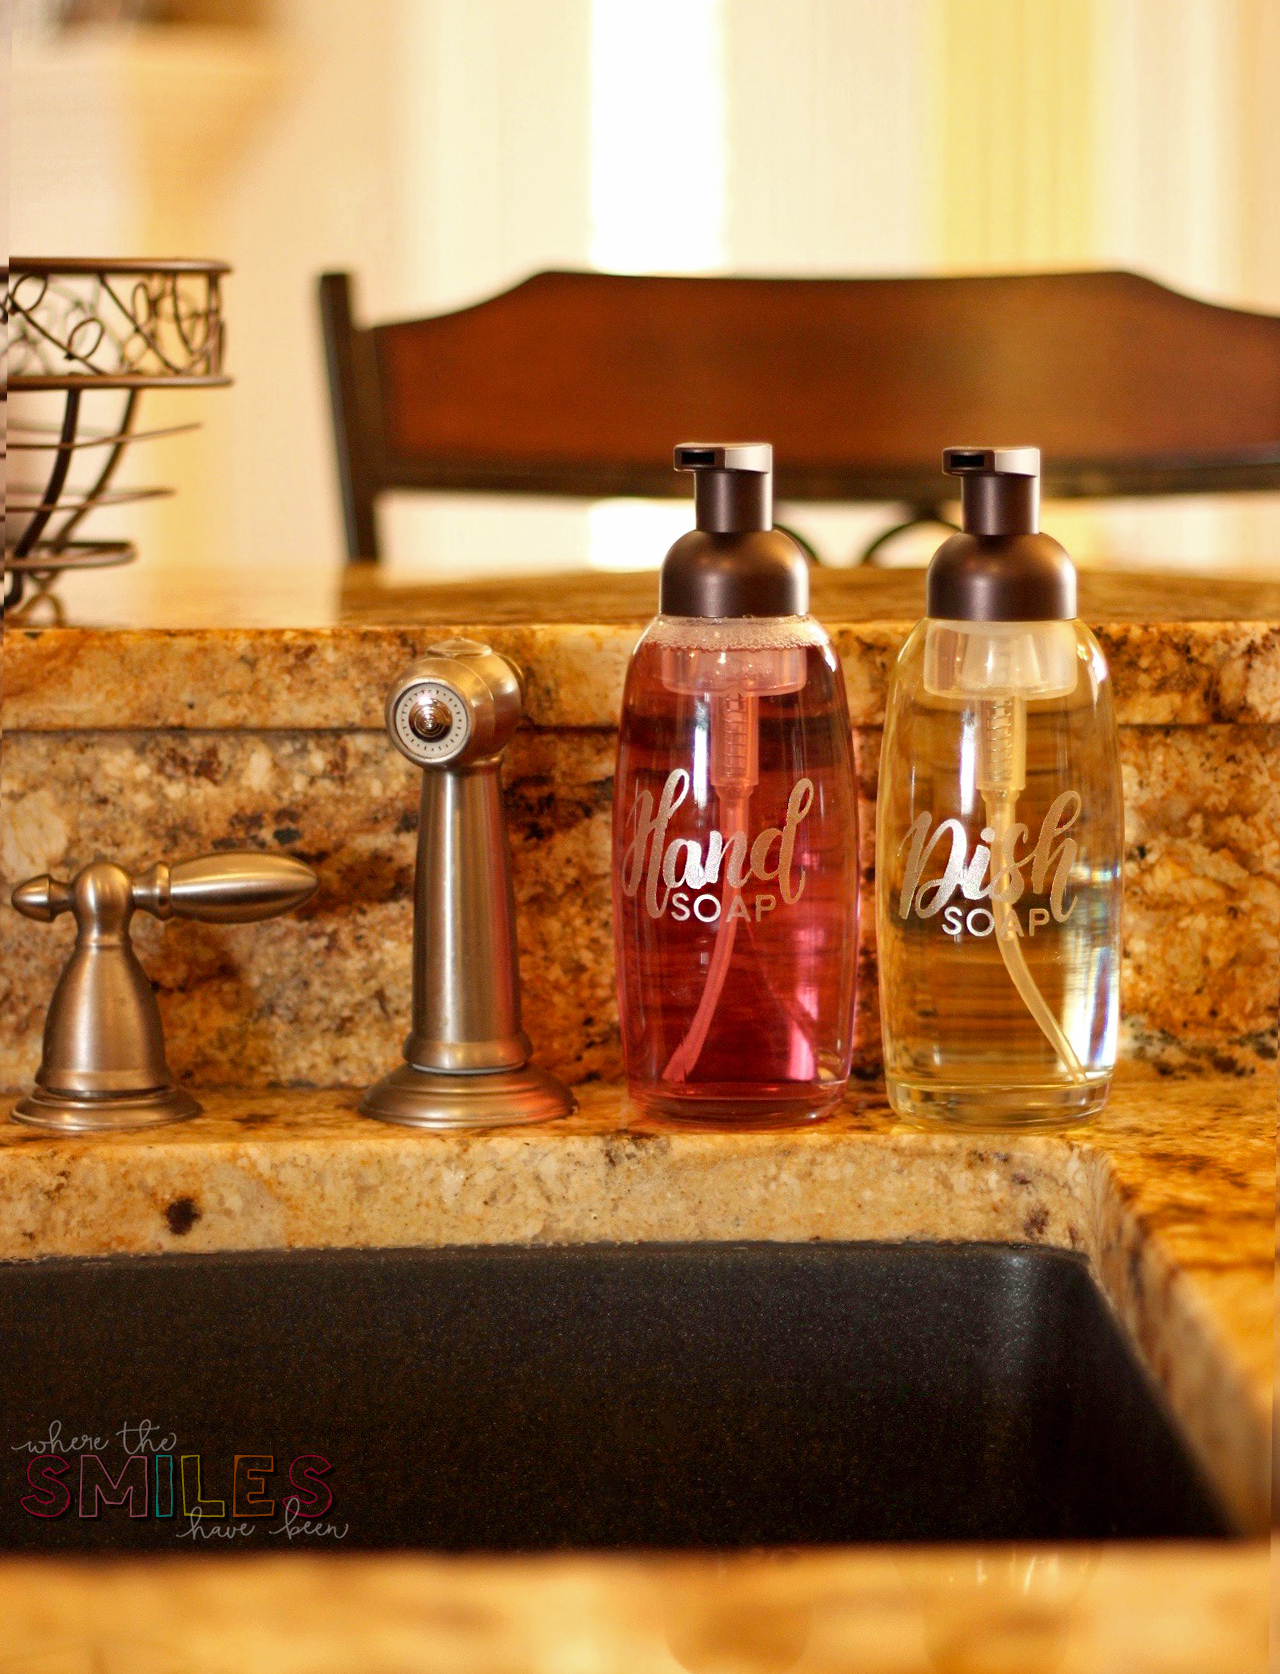 Foaming Soap Dispensers for hand soap and dish soap